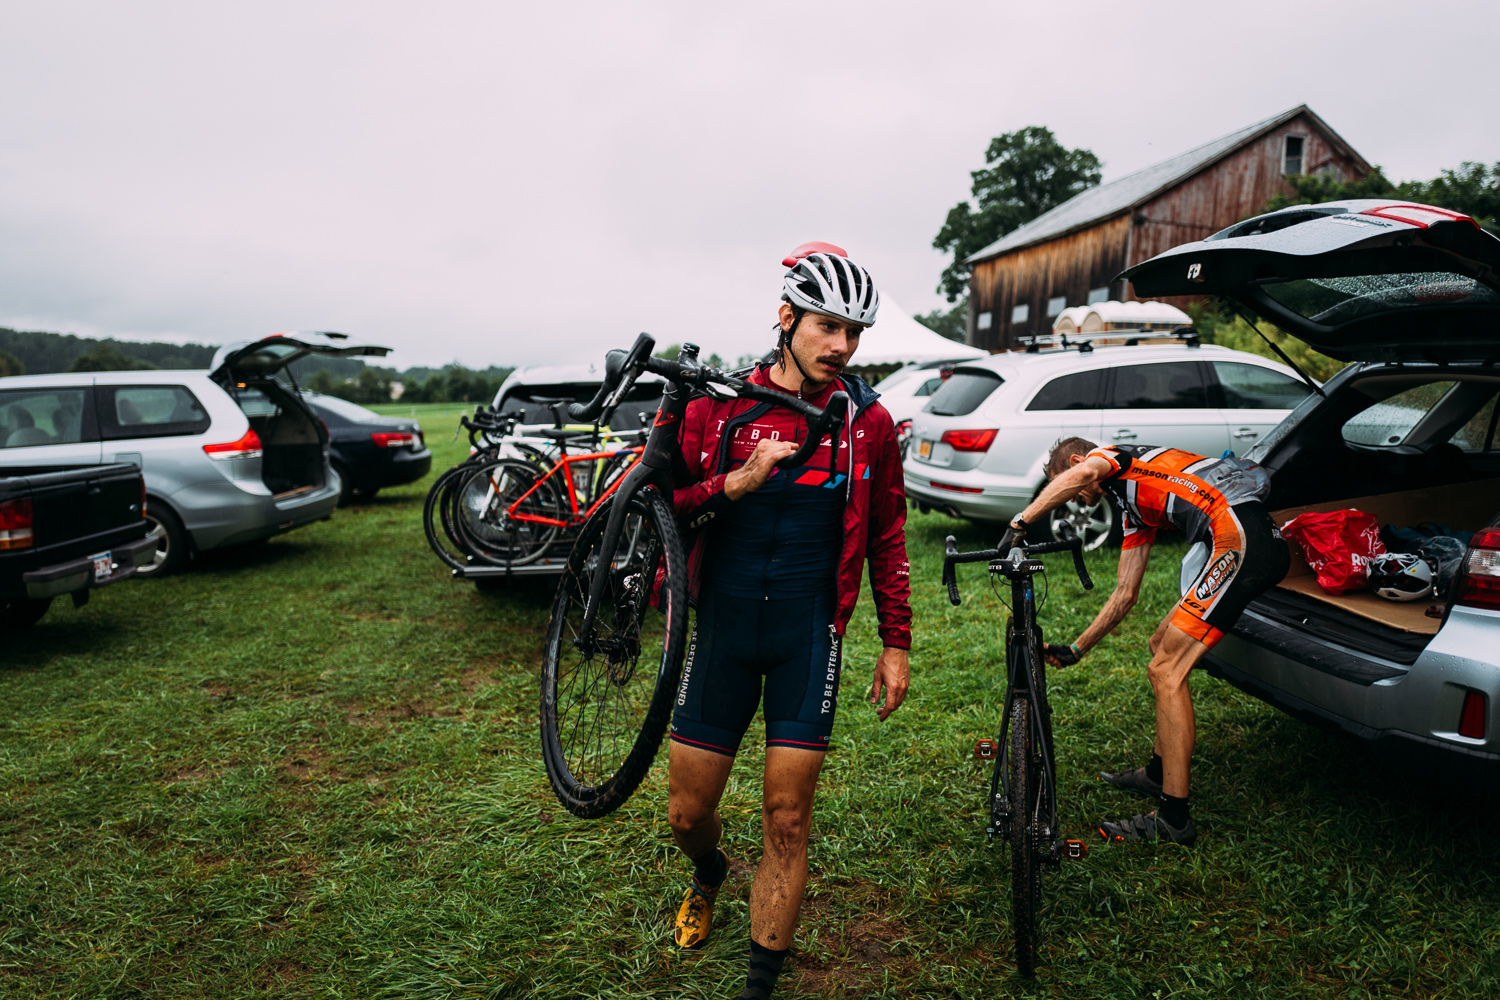 Stephen Rousseau at CycleSmart Cross Camp in August 2018.